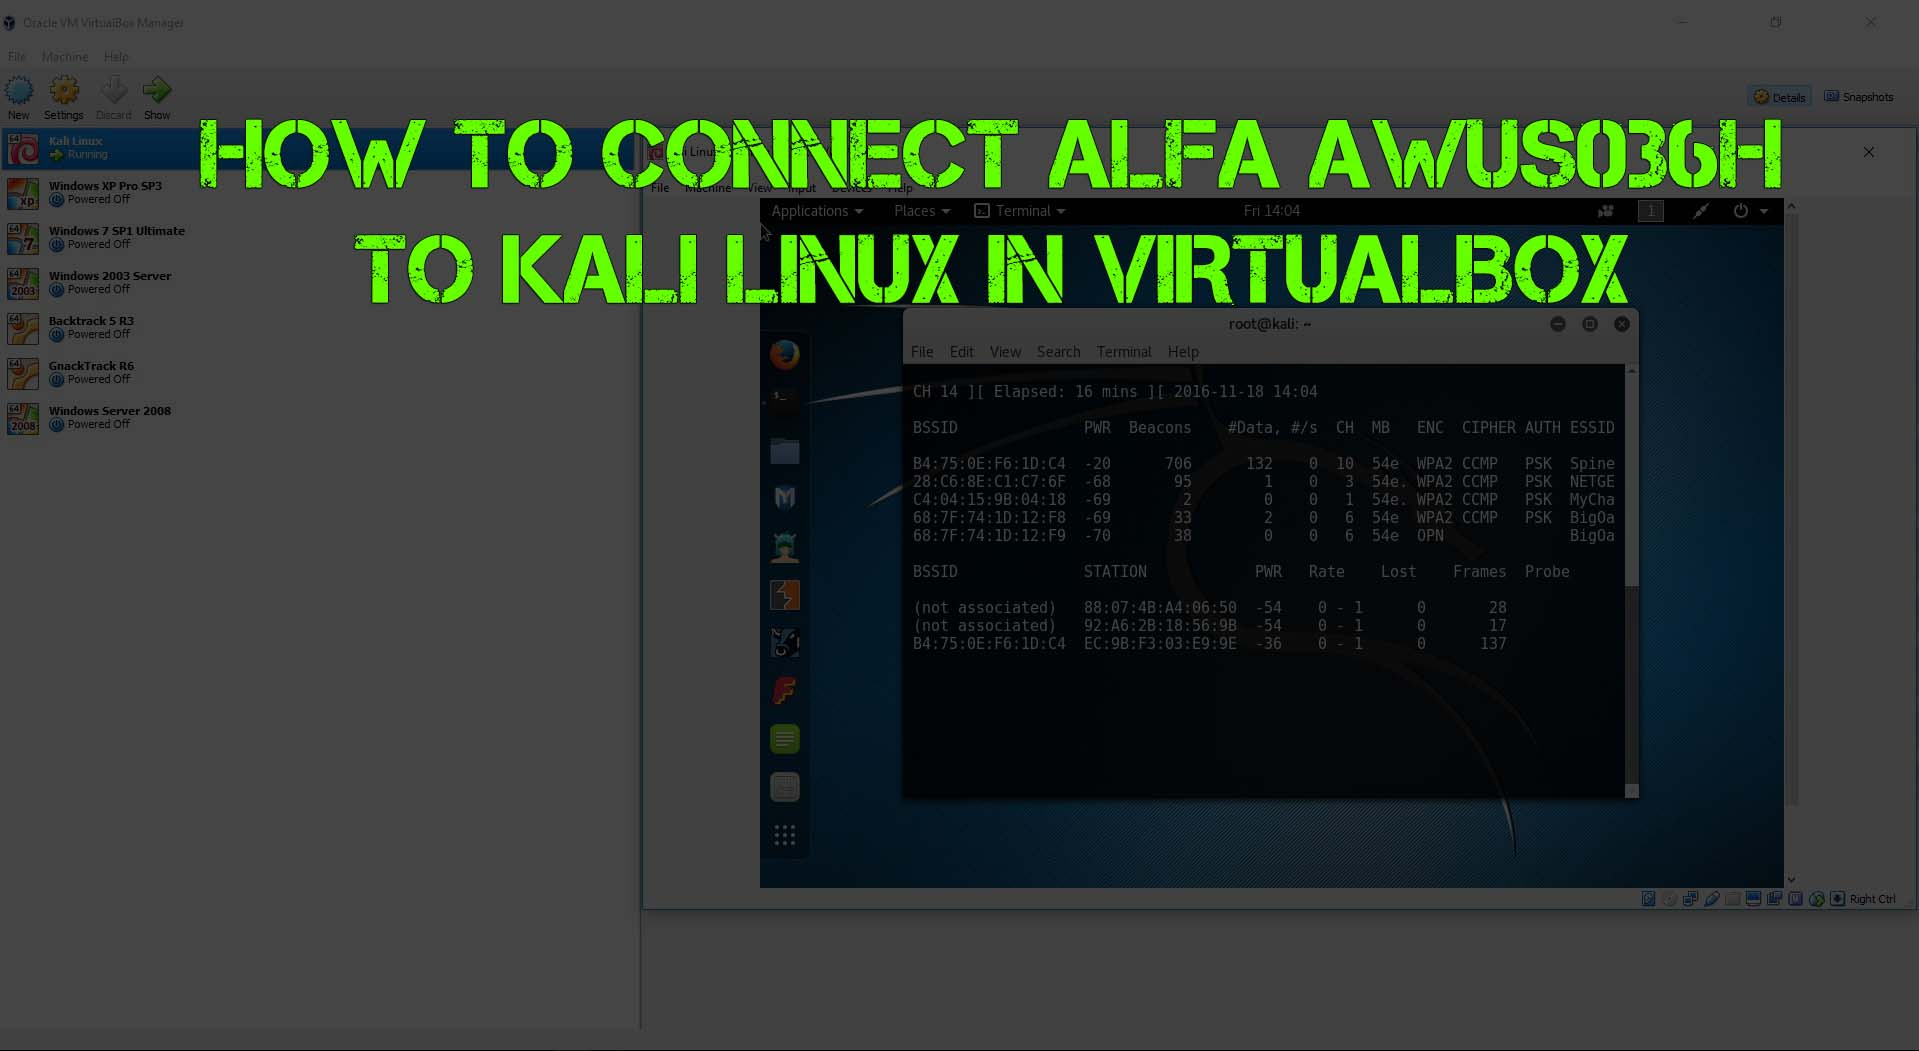 How to Connect ALFA AWUS036H to Kali Linux in VirtualBox - Enabling The USB Controller